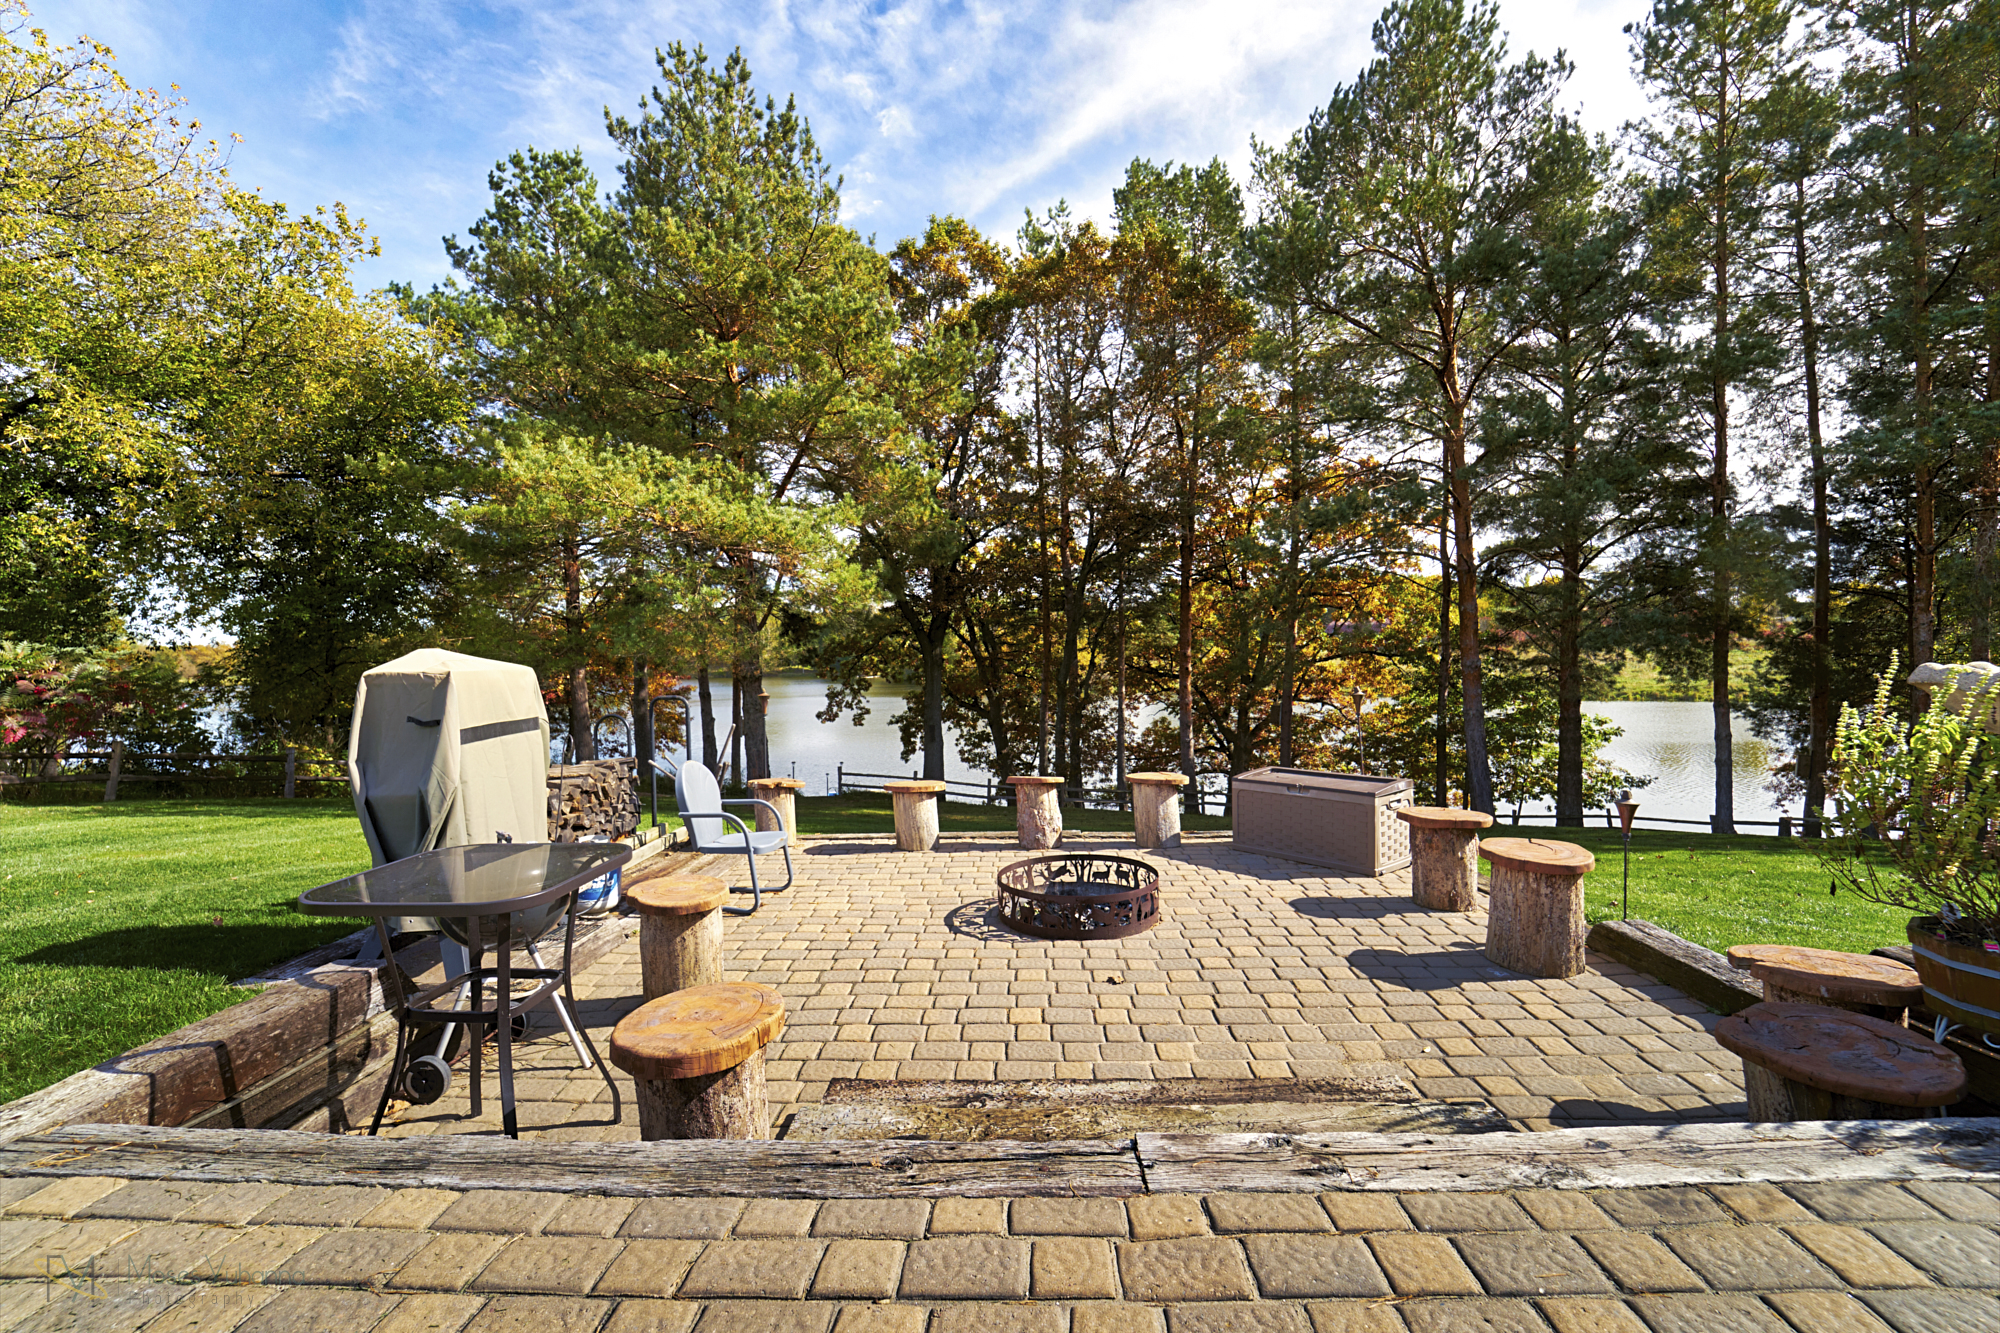 28431-jeffery-avenue-chisago-city-mn-patio2.jpg